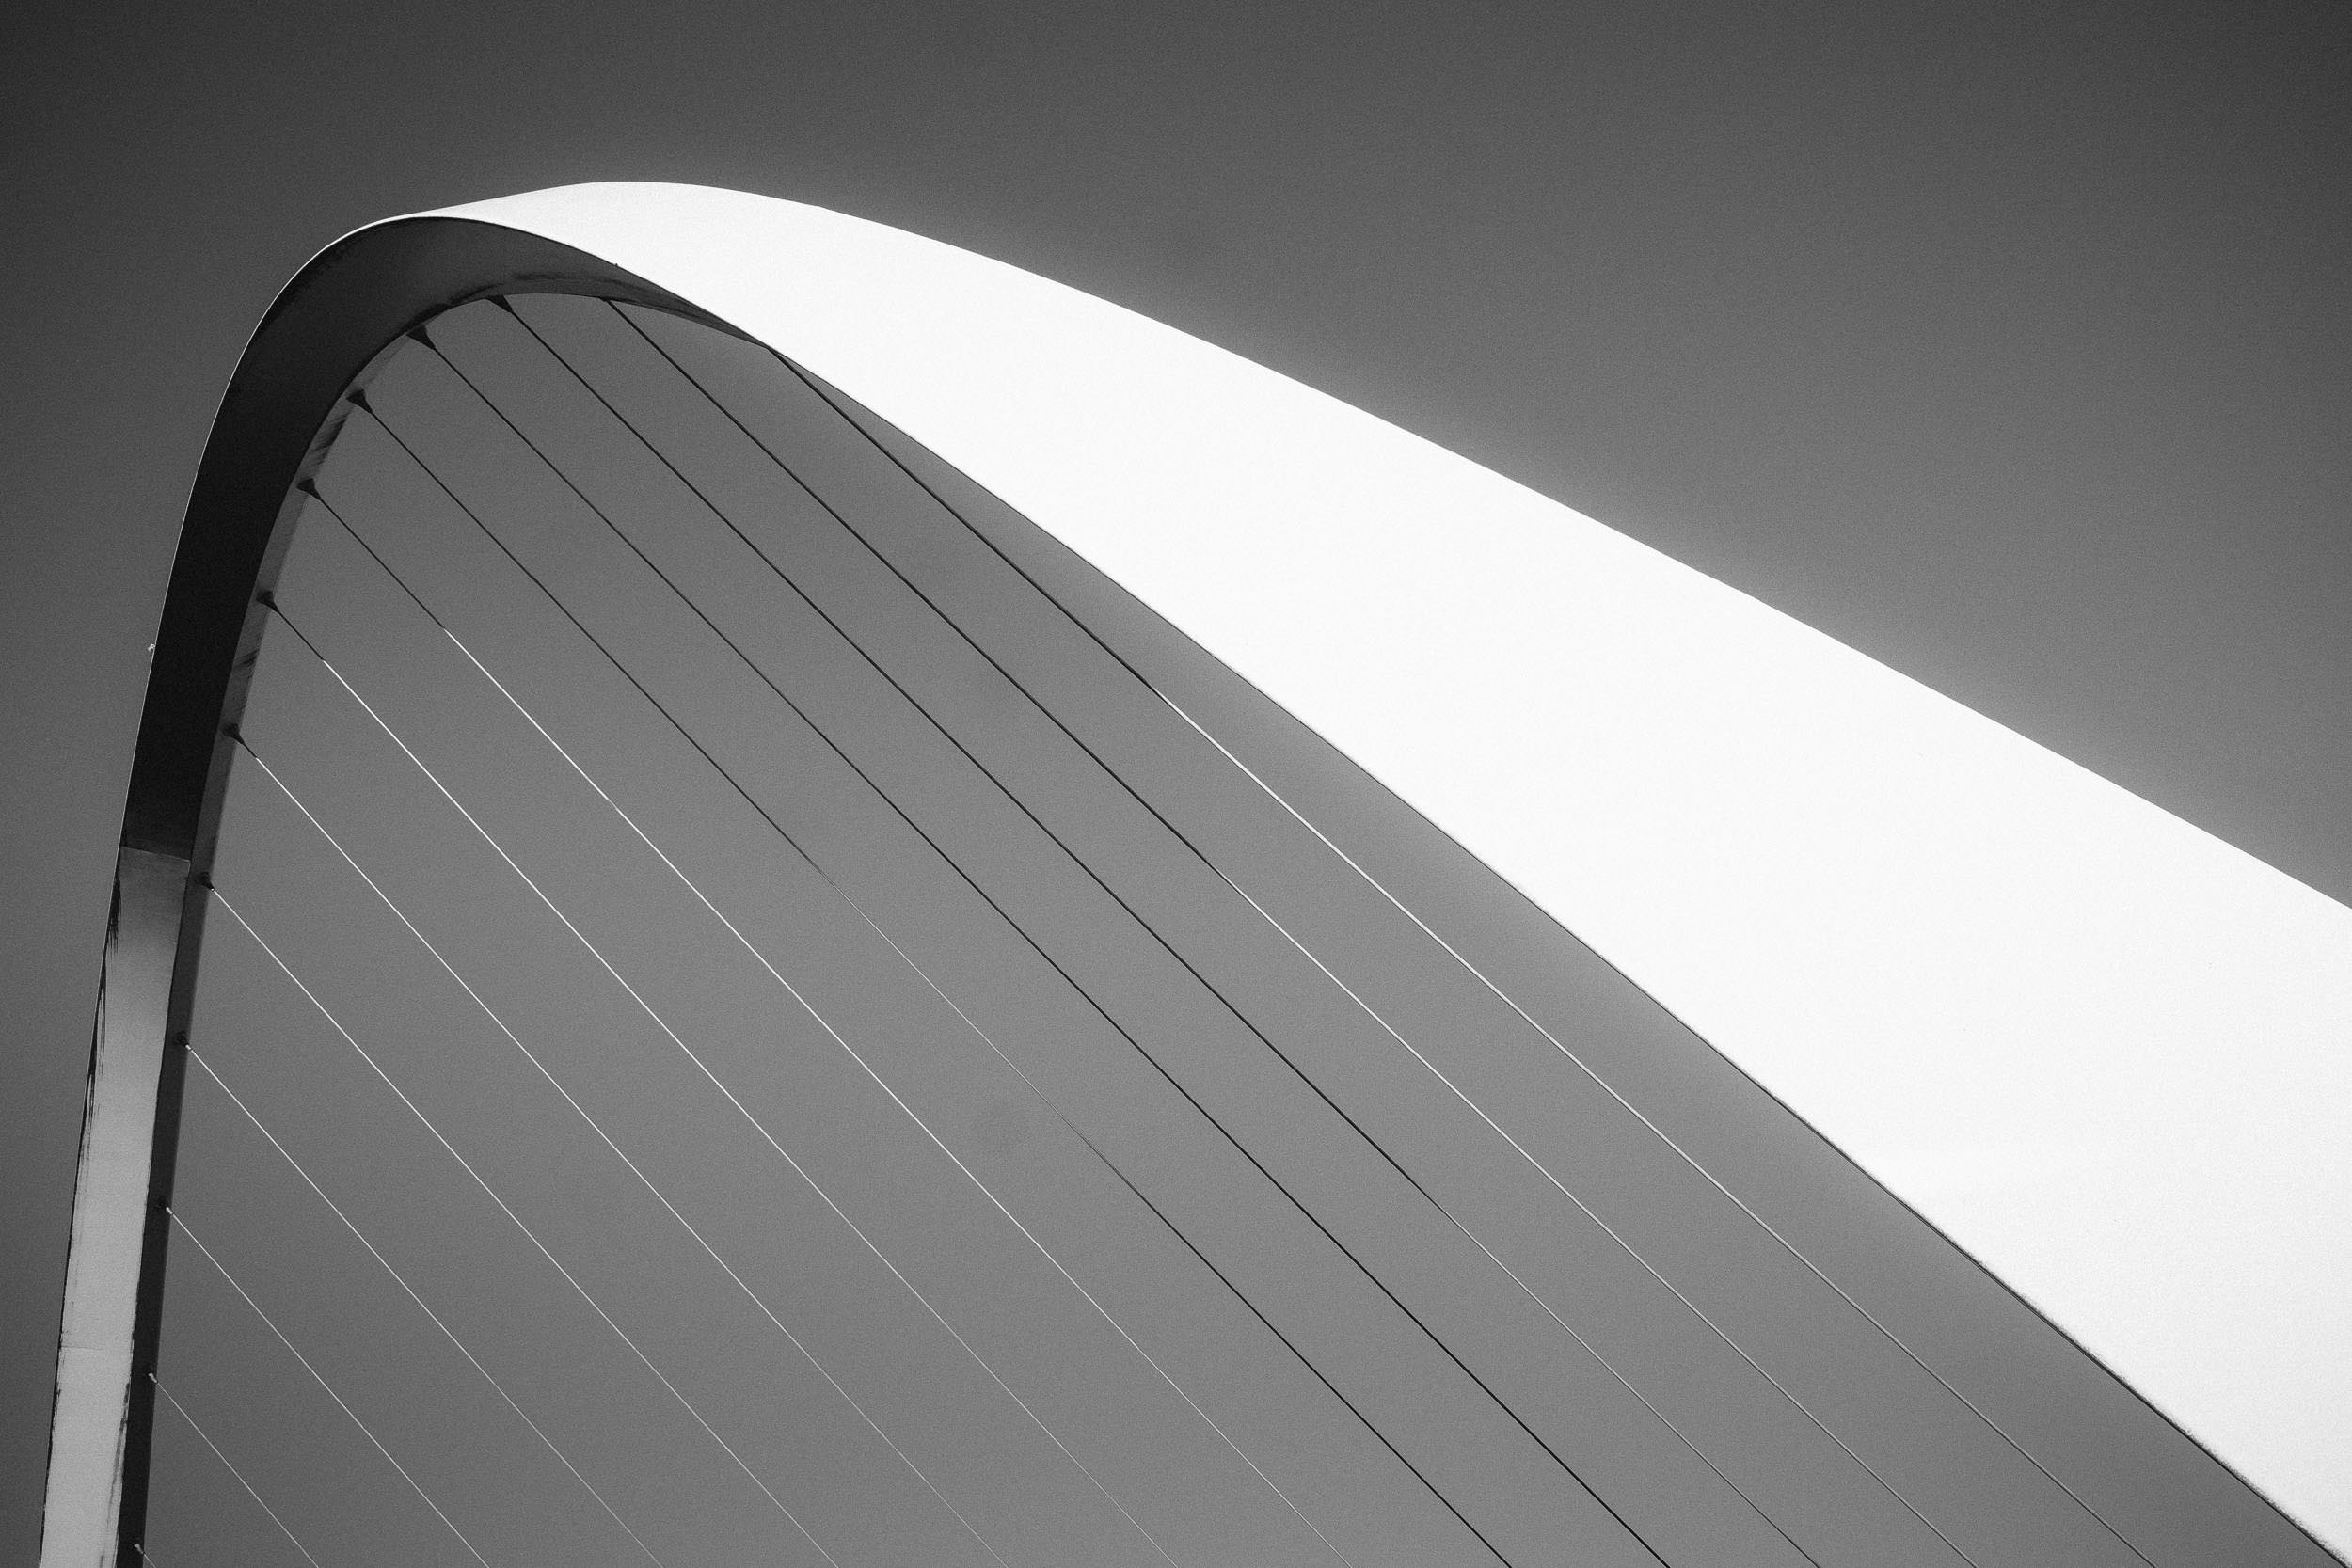 Black and white photo of the arch of the Millennium bridge Newcastle Gateshead